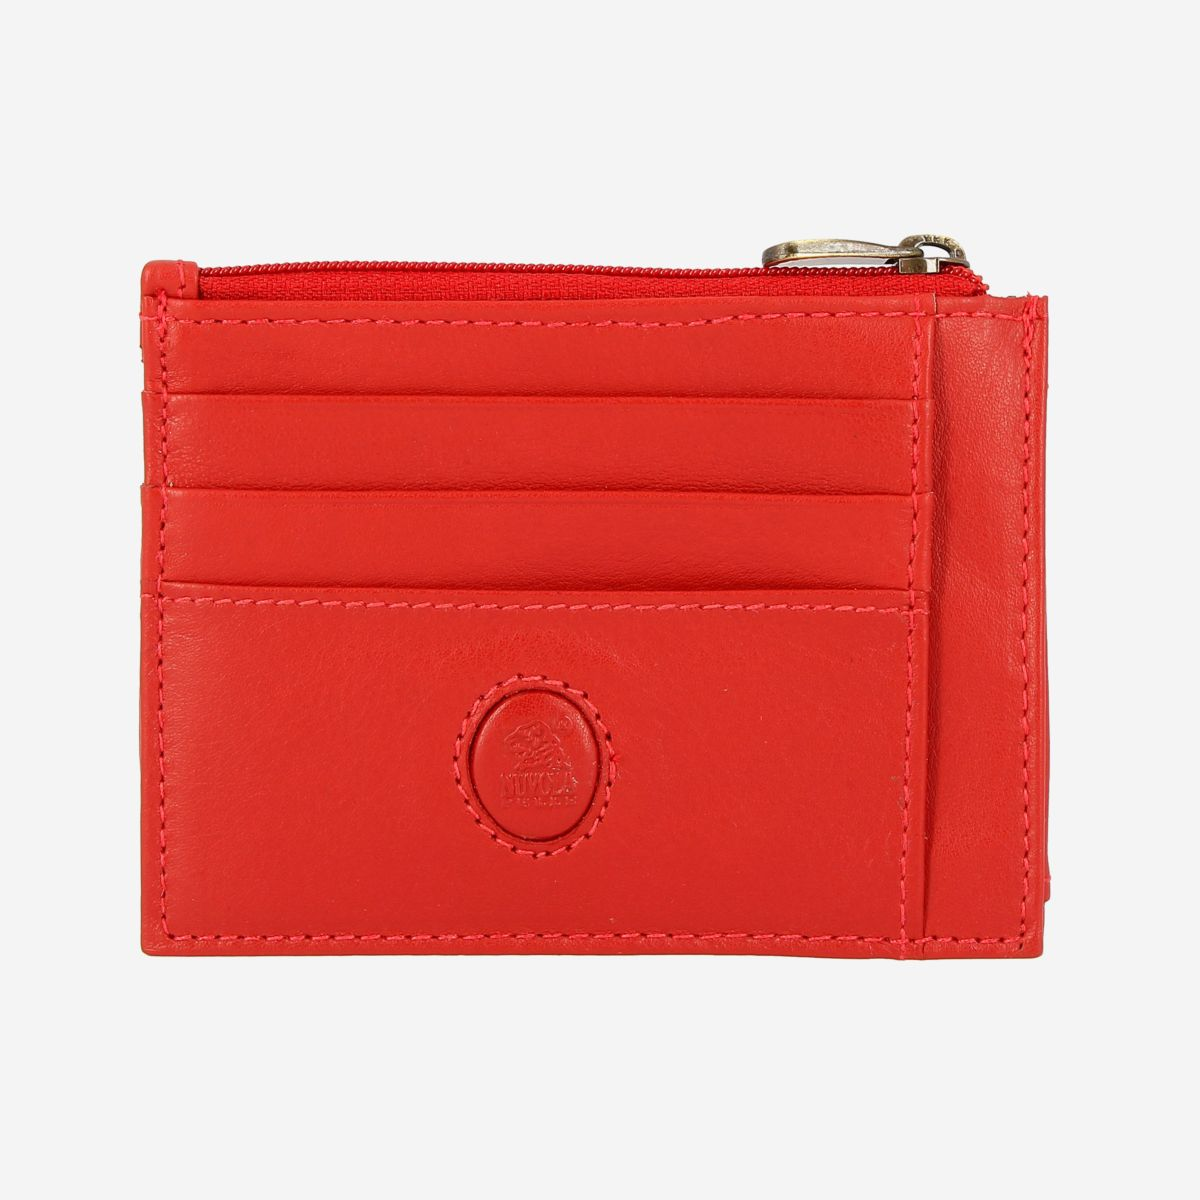 NUVOLA PELLE Slim Leather Credit Card Wallet - Red